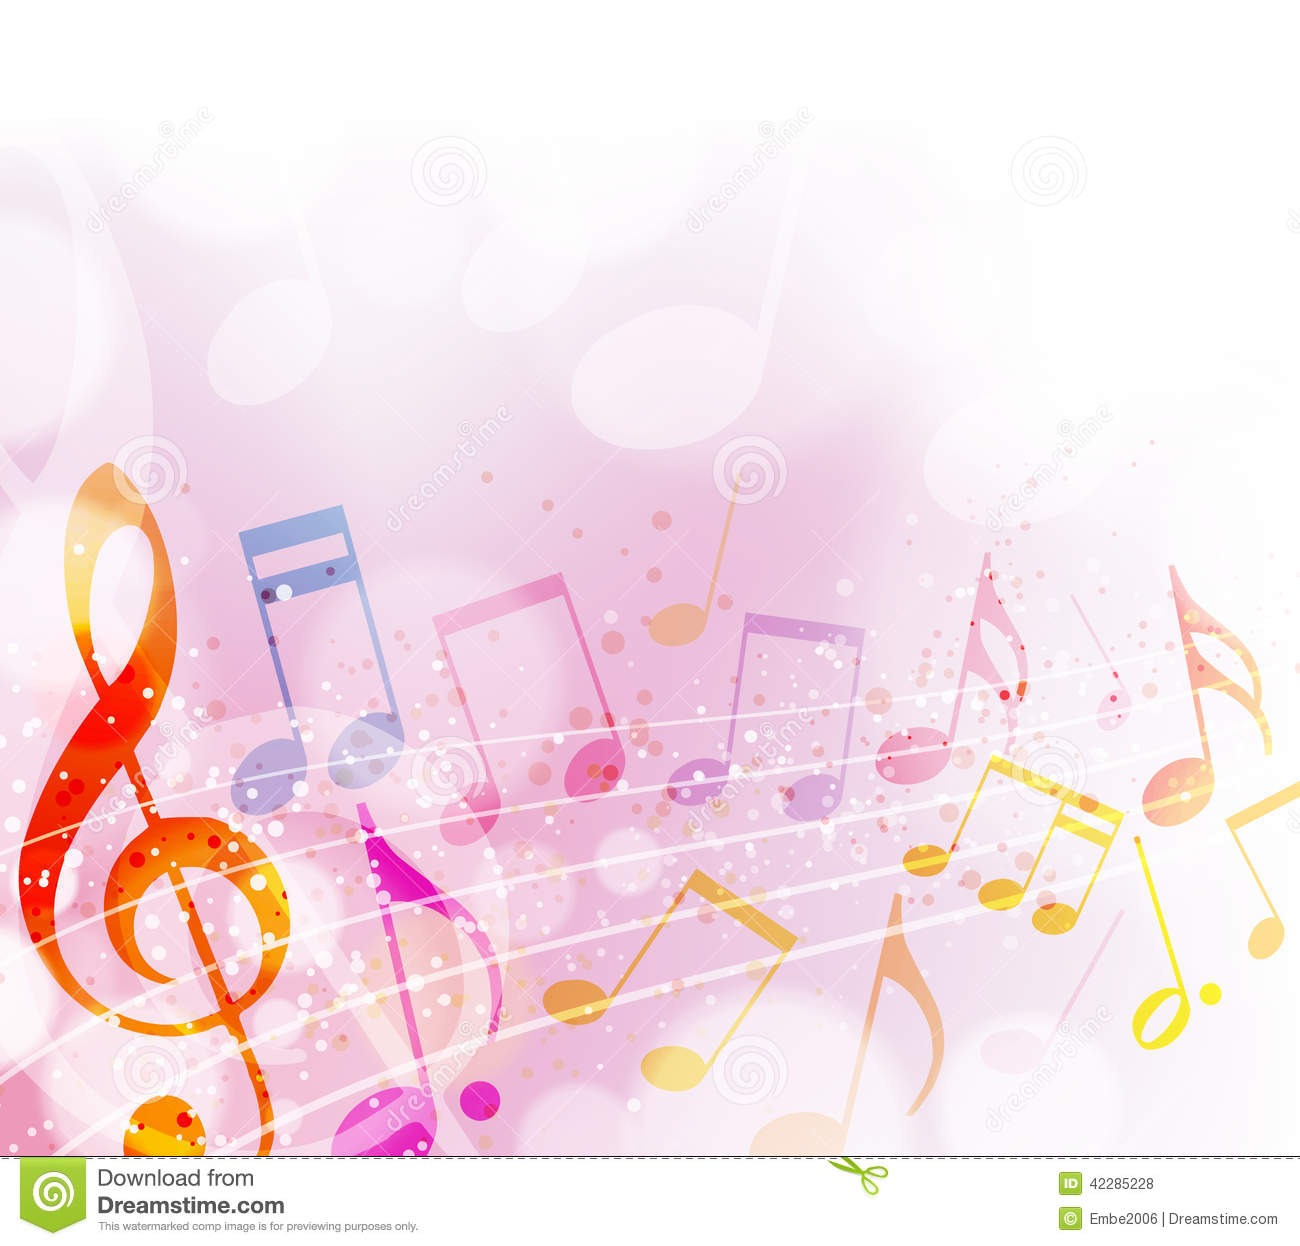 Melody Loops Royalty Free Music Background Download